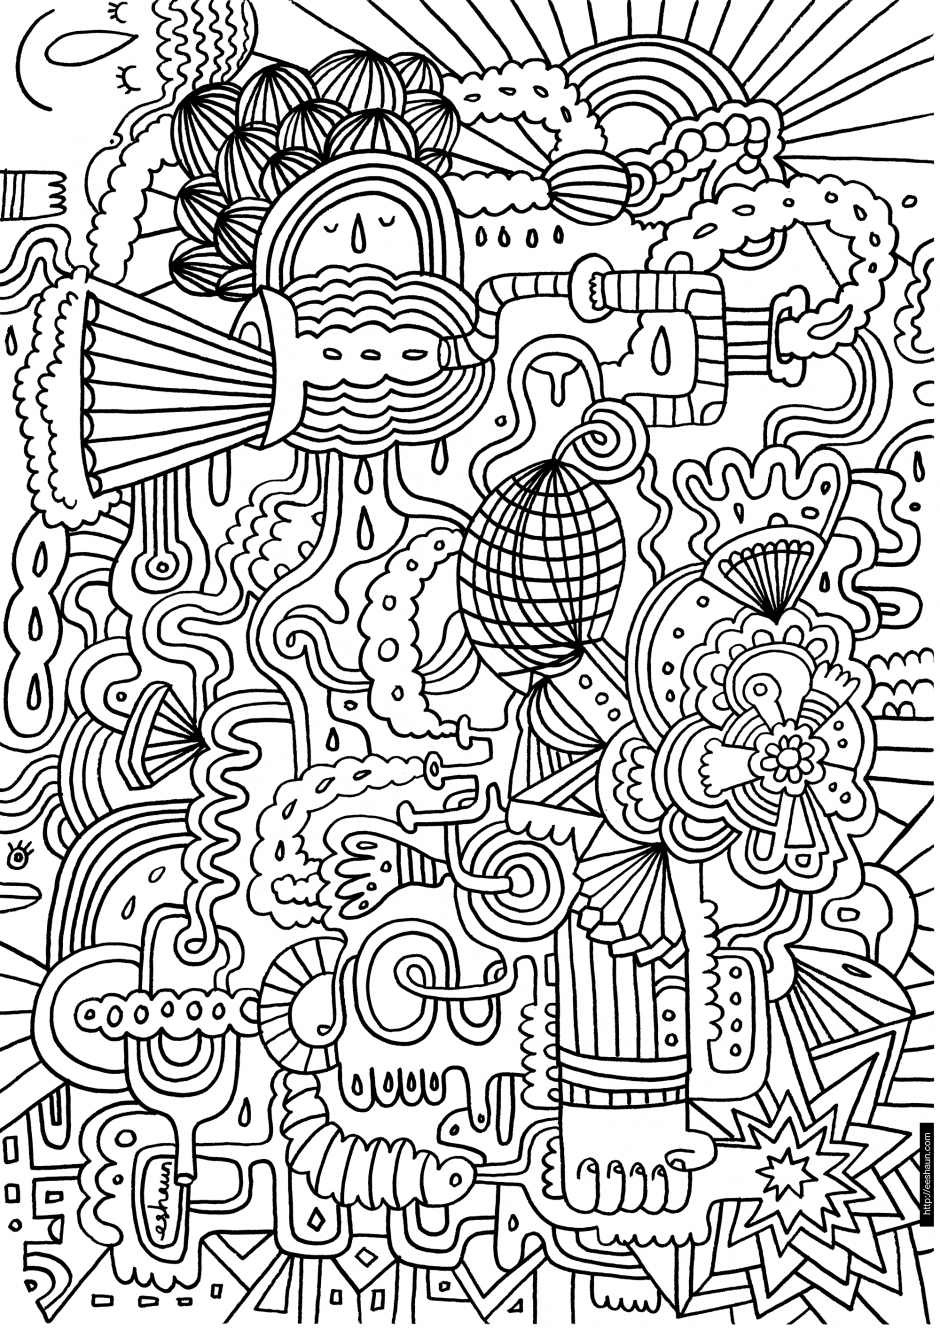 coloring pages difficult but fun coloring pages free and printable - Fun Colouring Sheets